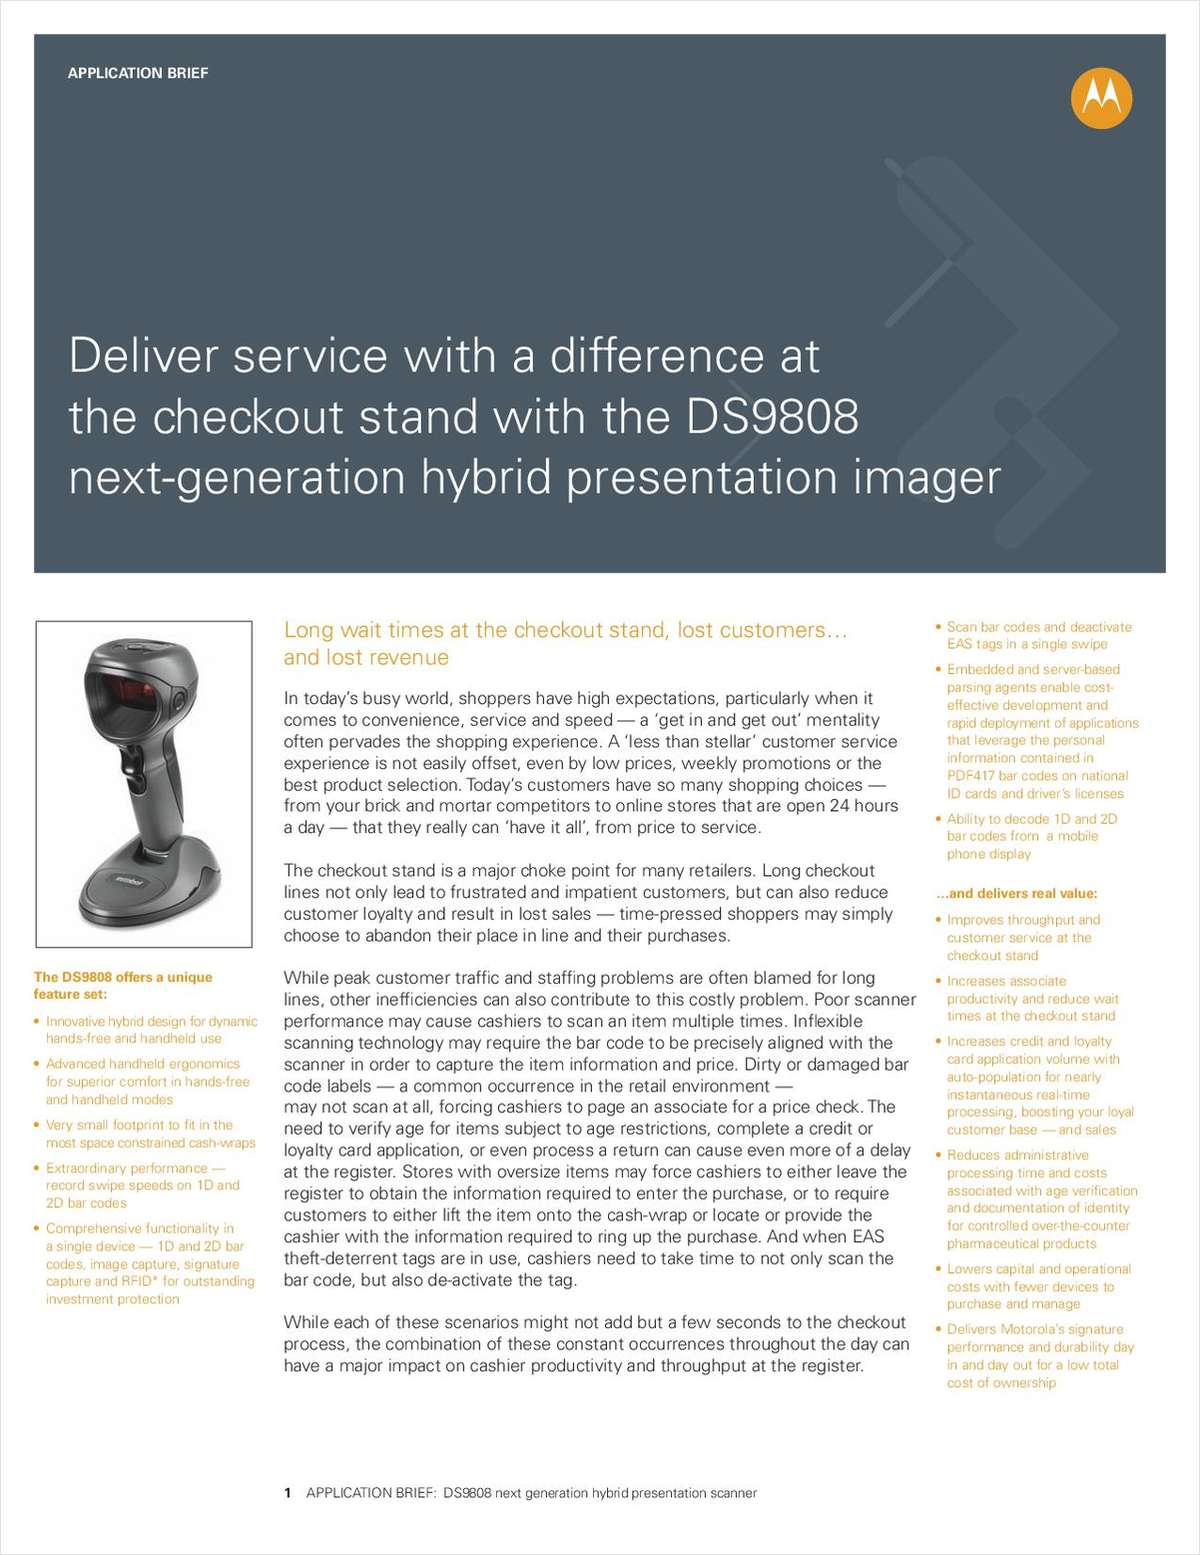 Deliver Service with a Difference Free Application Brief